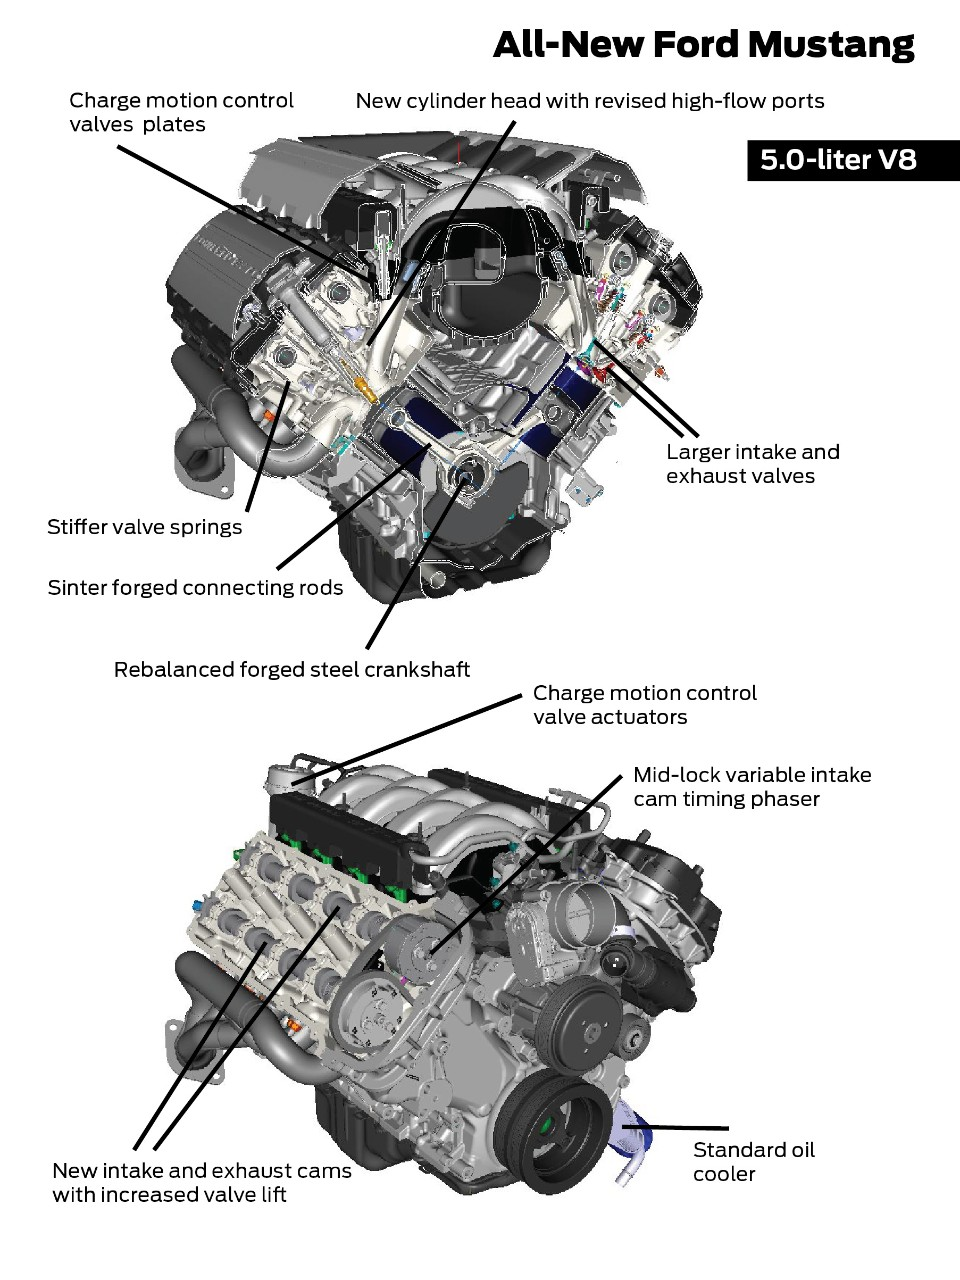 Ford Mustang Gt Engine Specs